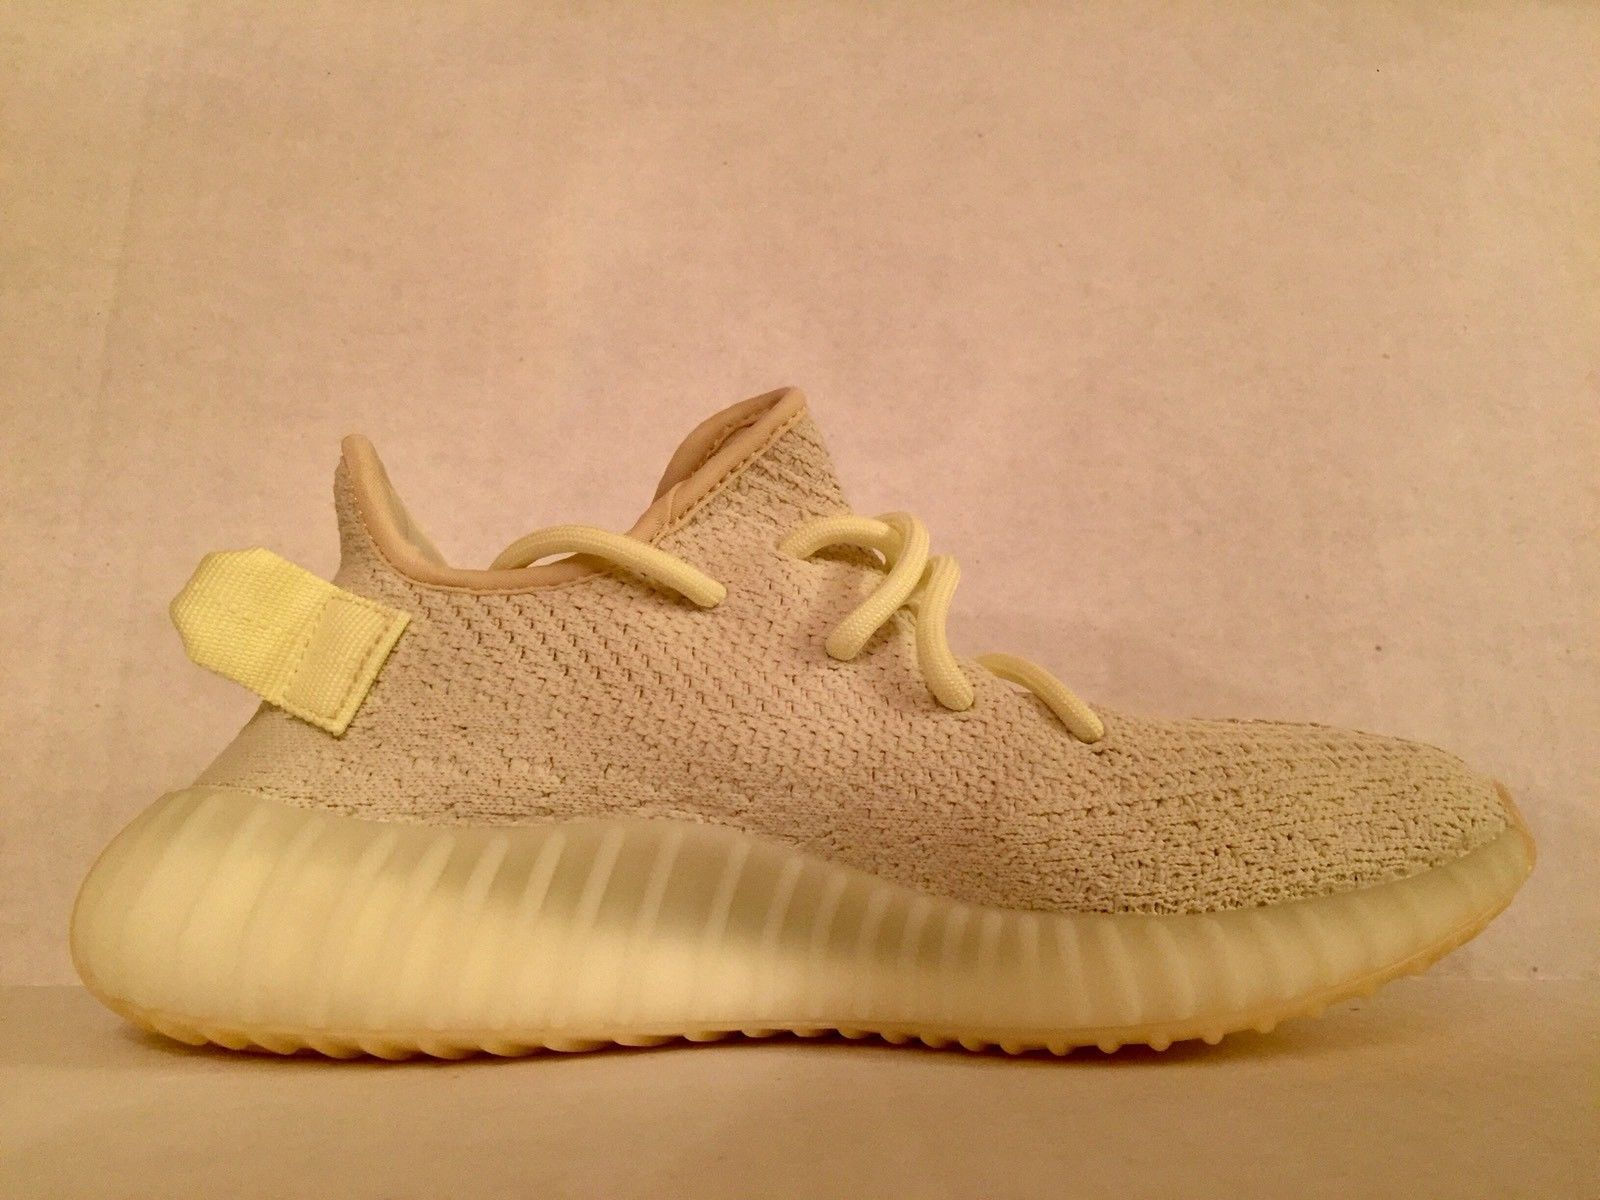 a36efbcd6 DS Adidas Yeezy Boost 350 V2 BUTTER Men s Size 5.5   Women s Size 6.5